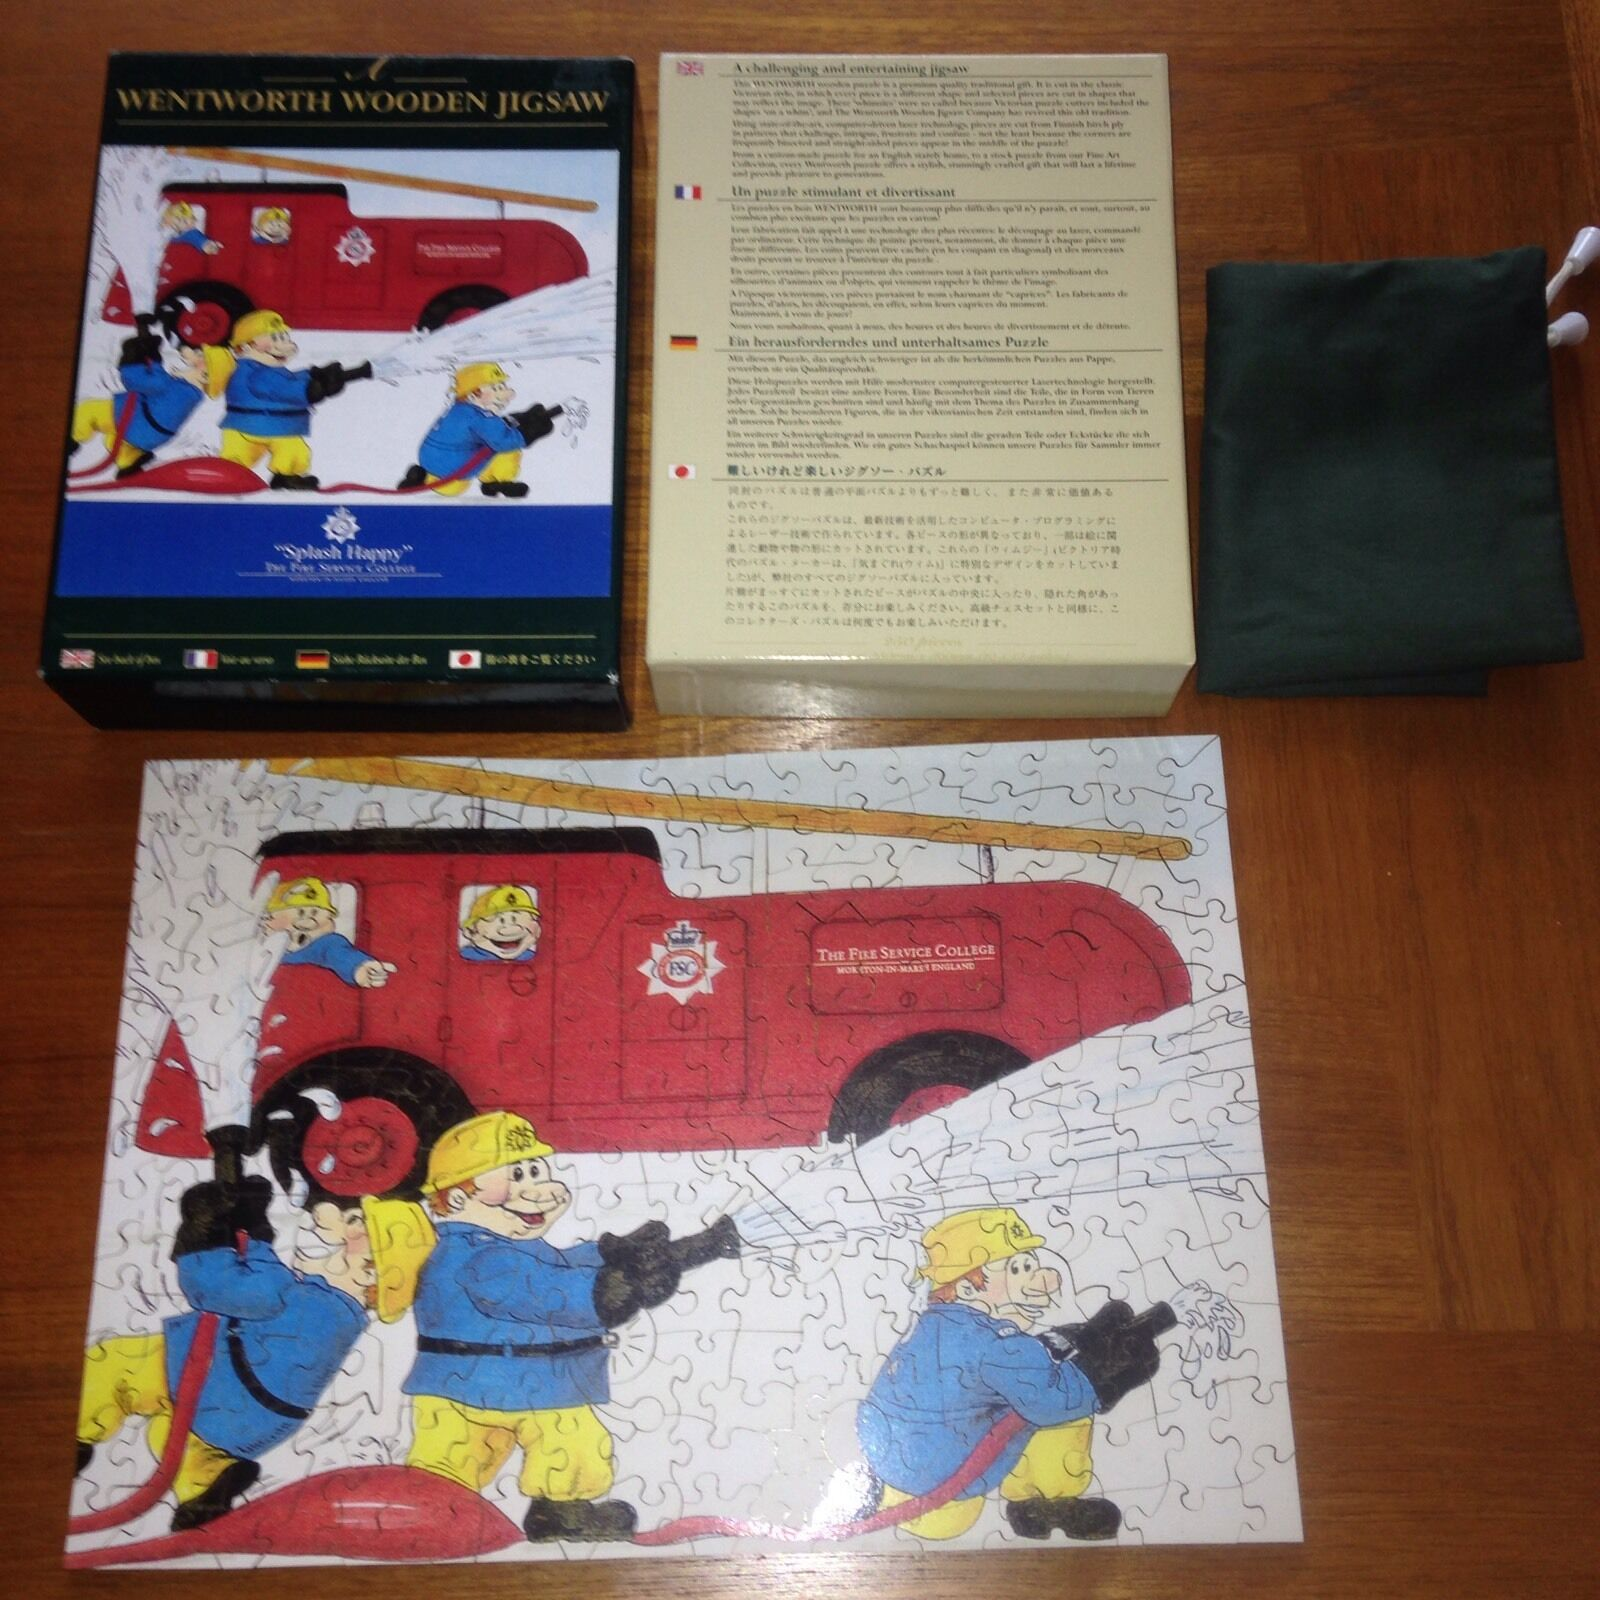 Wentworth Wooden Jigsaw Puzzle - SPLASH HAPPY - The Fire Service College - RARE